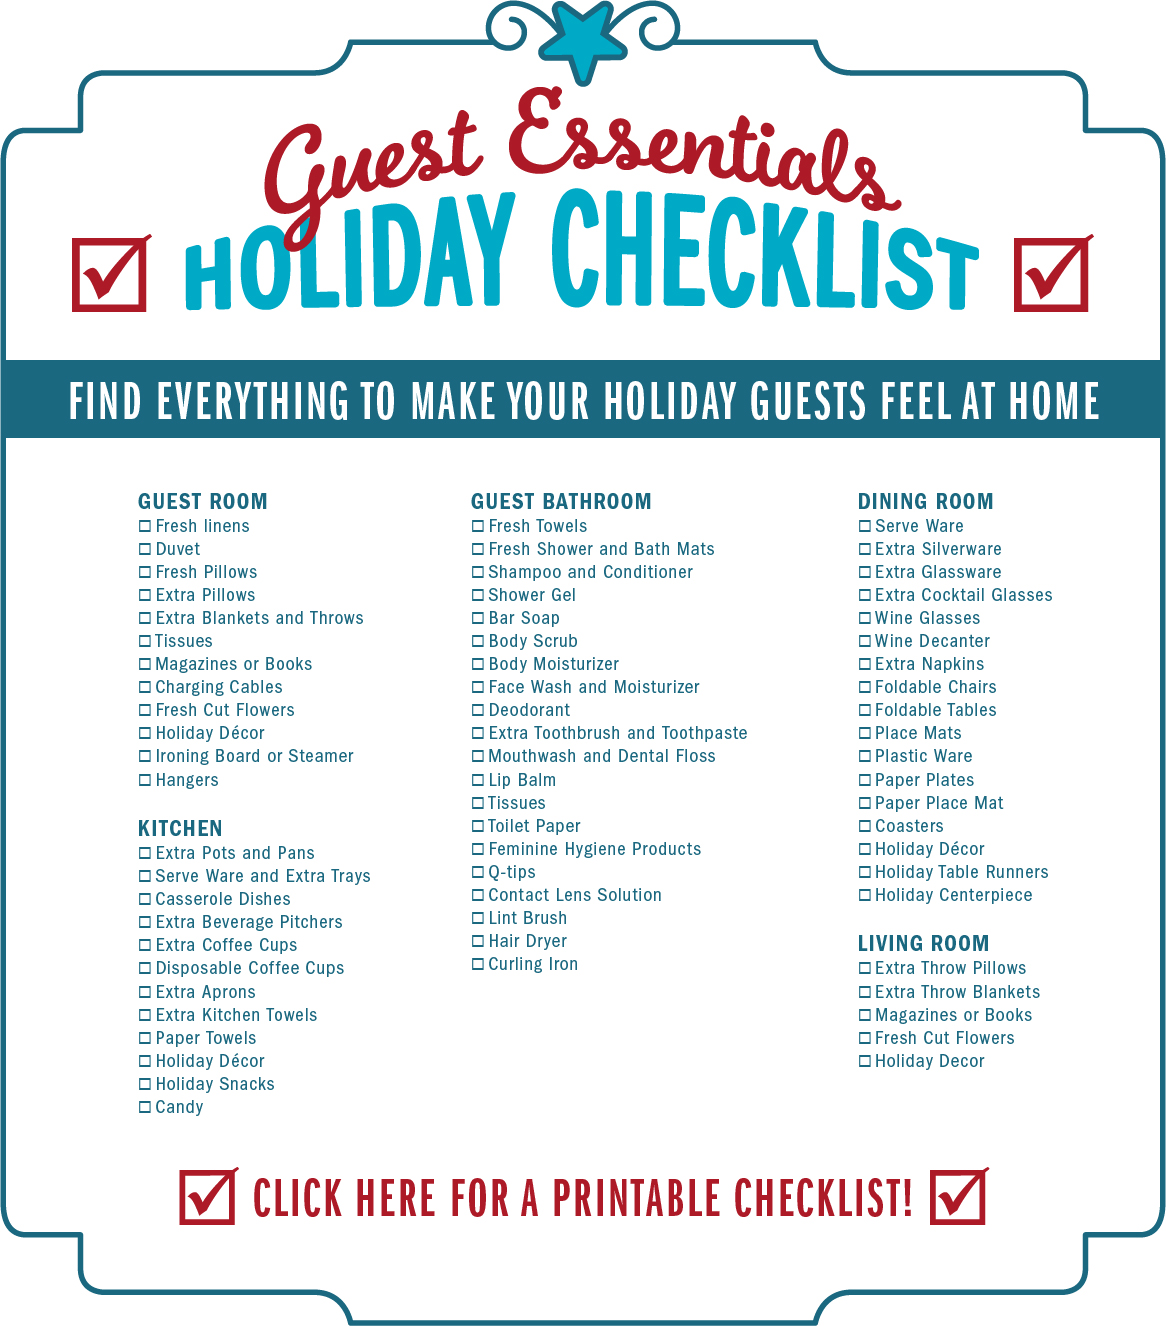 Squishy Mushy Checklist : Guest Essentials Holiday Checklist mygabes